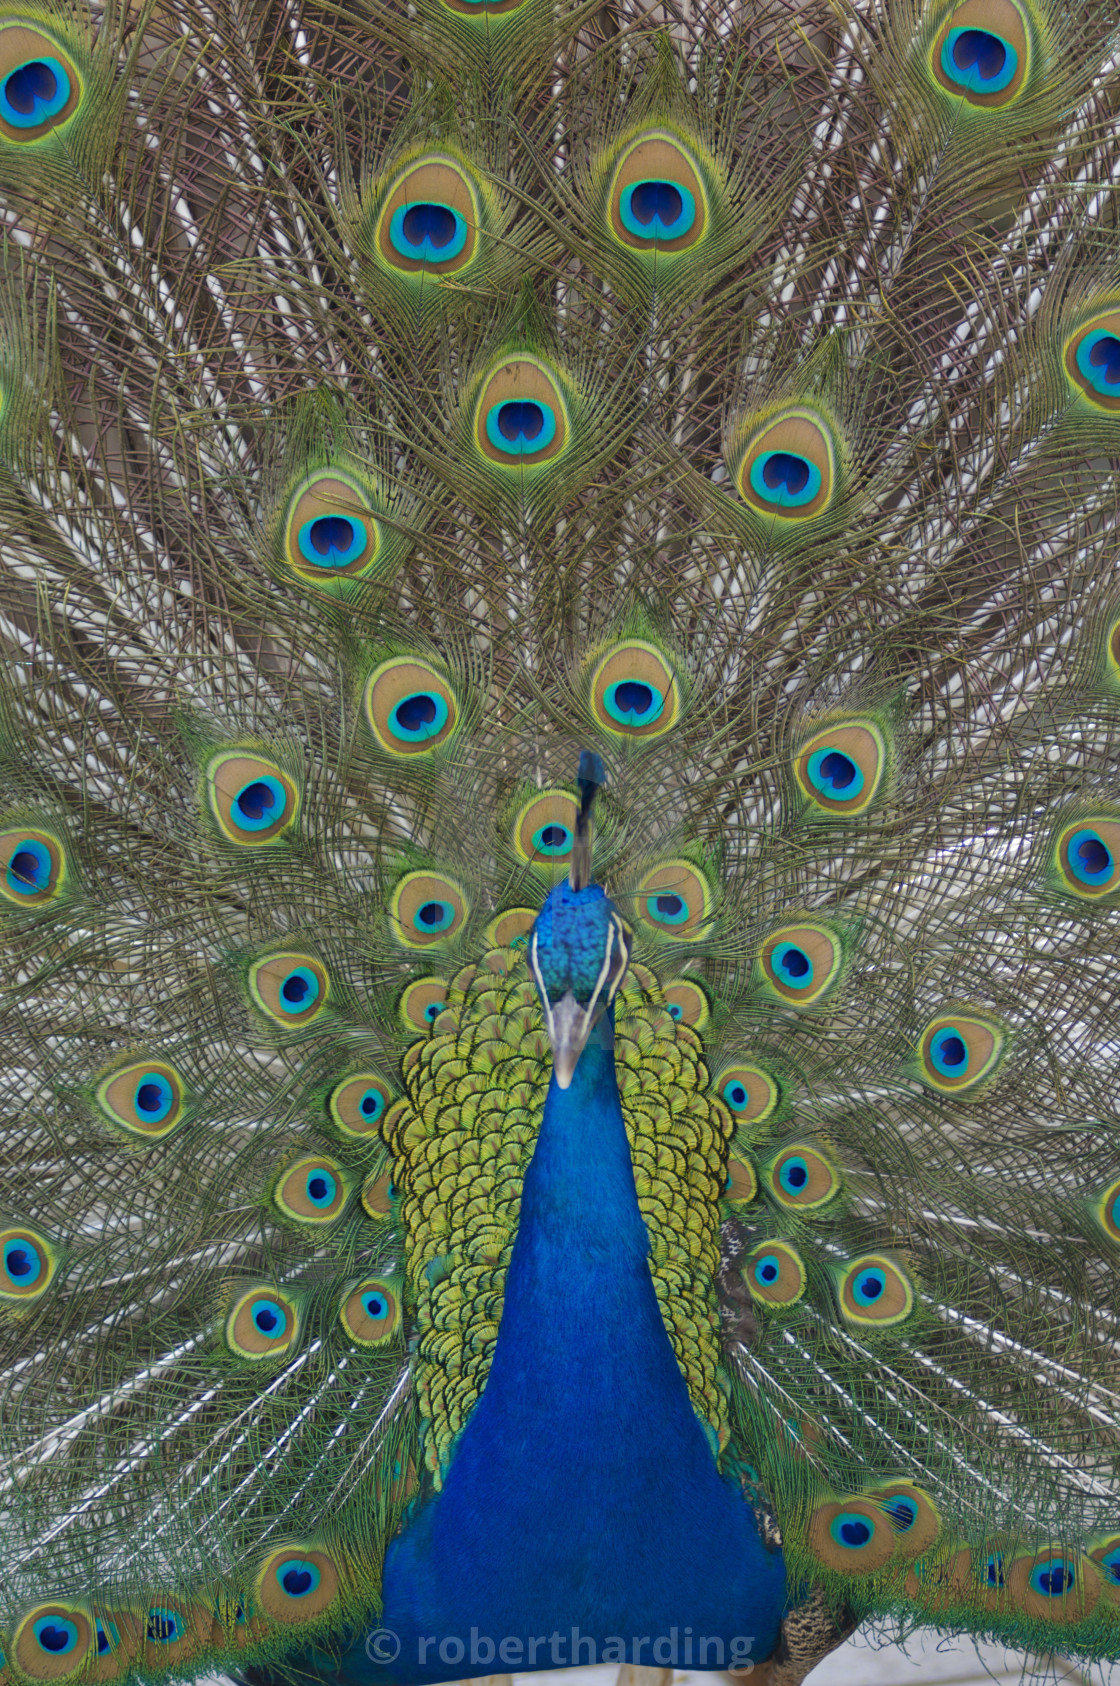 """Peacock displaying tail feathers, United Kingdom, Europe"" stock image"